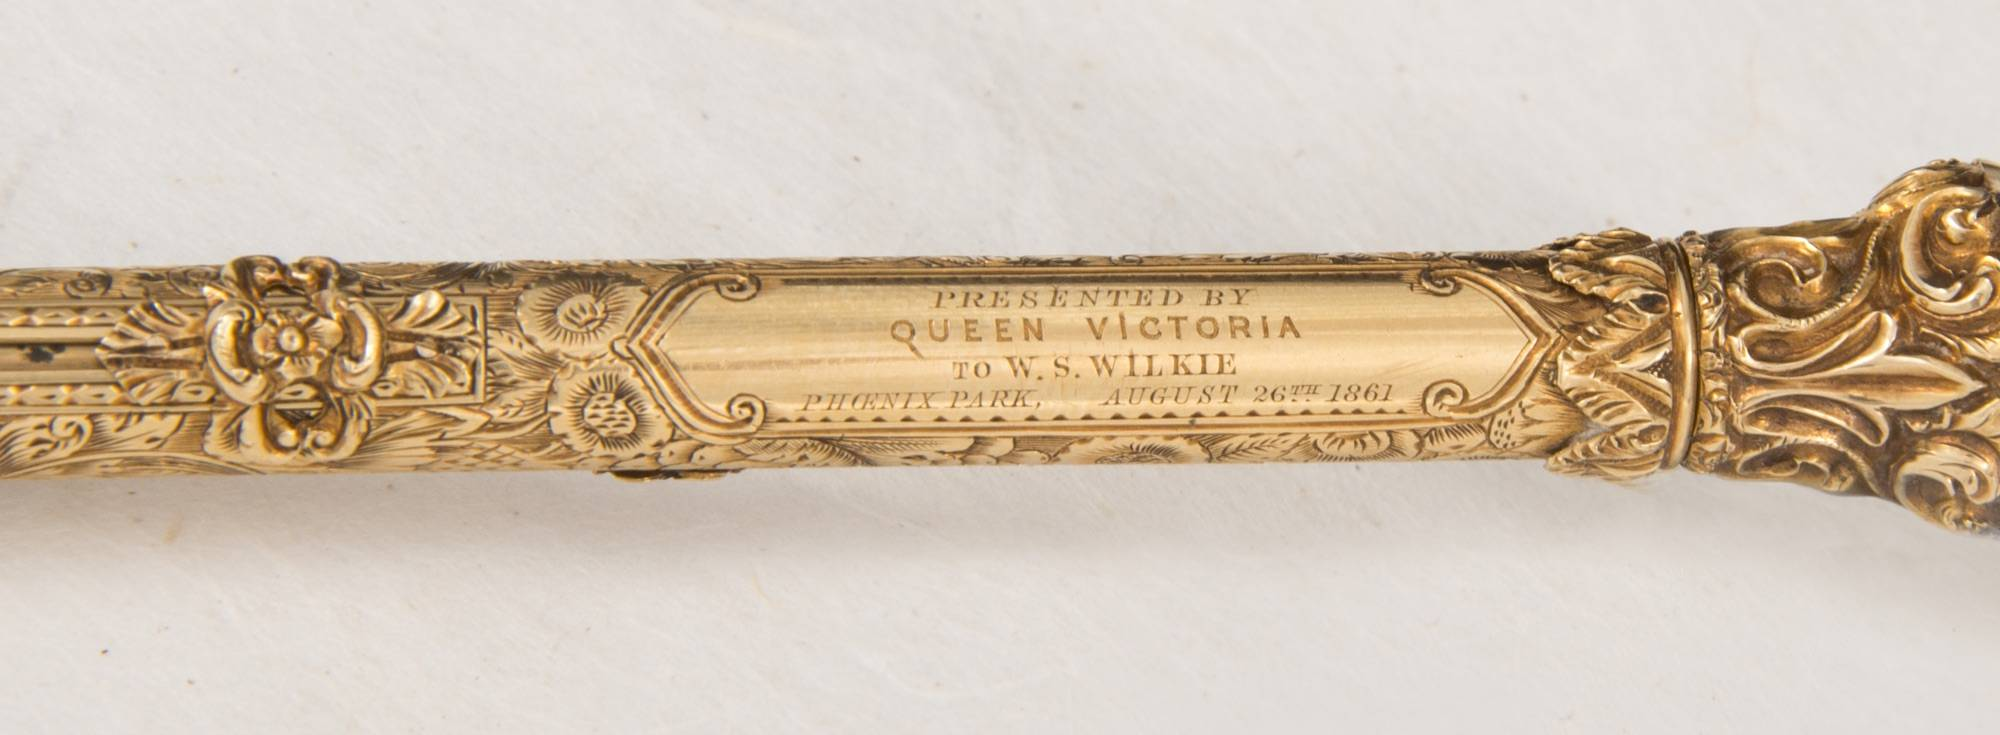 Gold pen presented by Queen Victoria to W.S. Wilkie, bailiff of the Phoenix Park, 1861